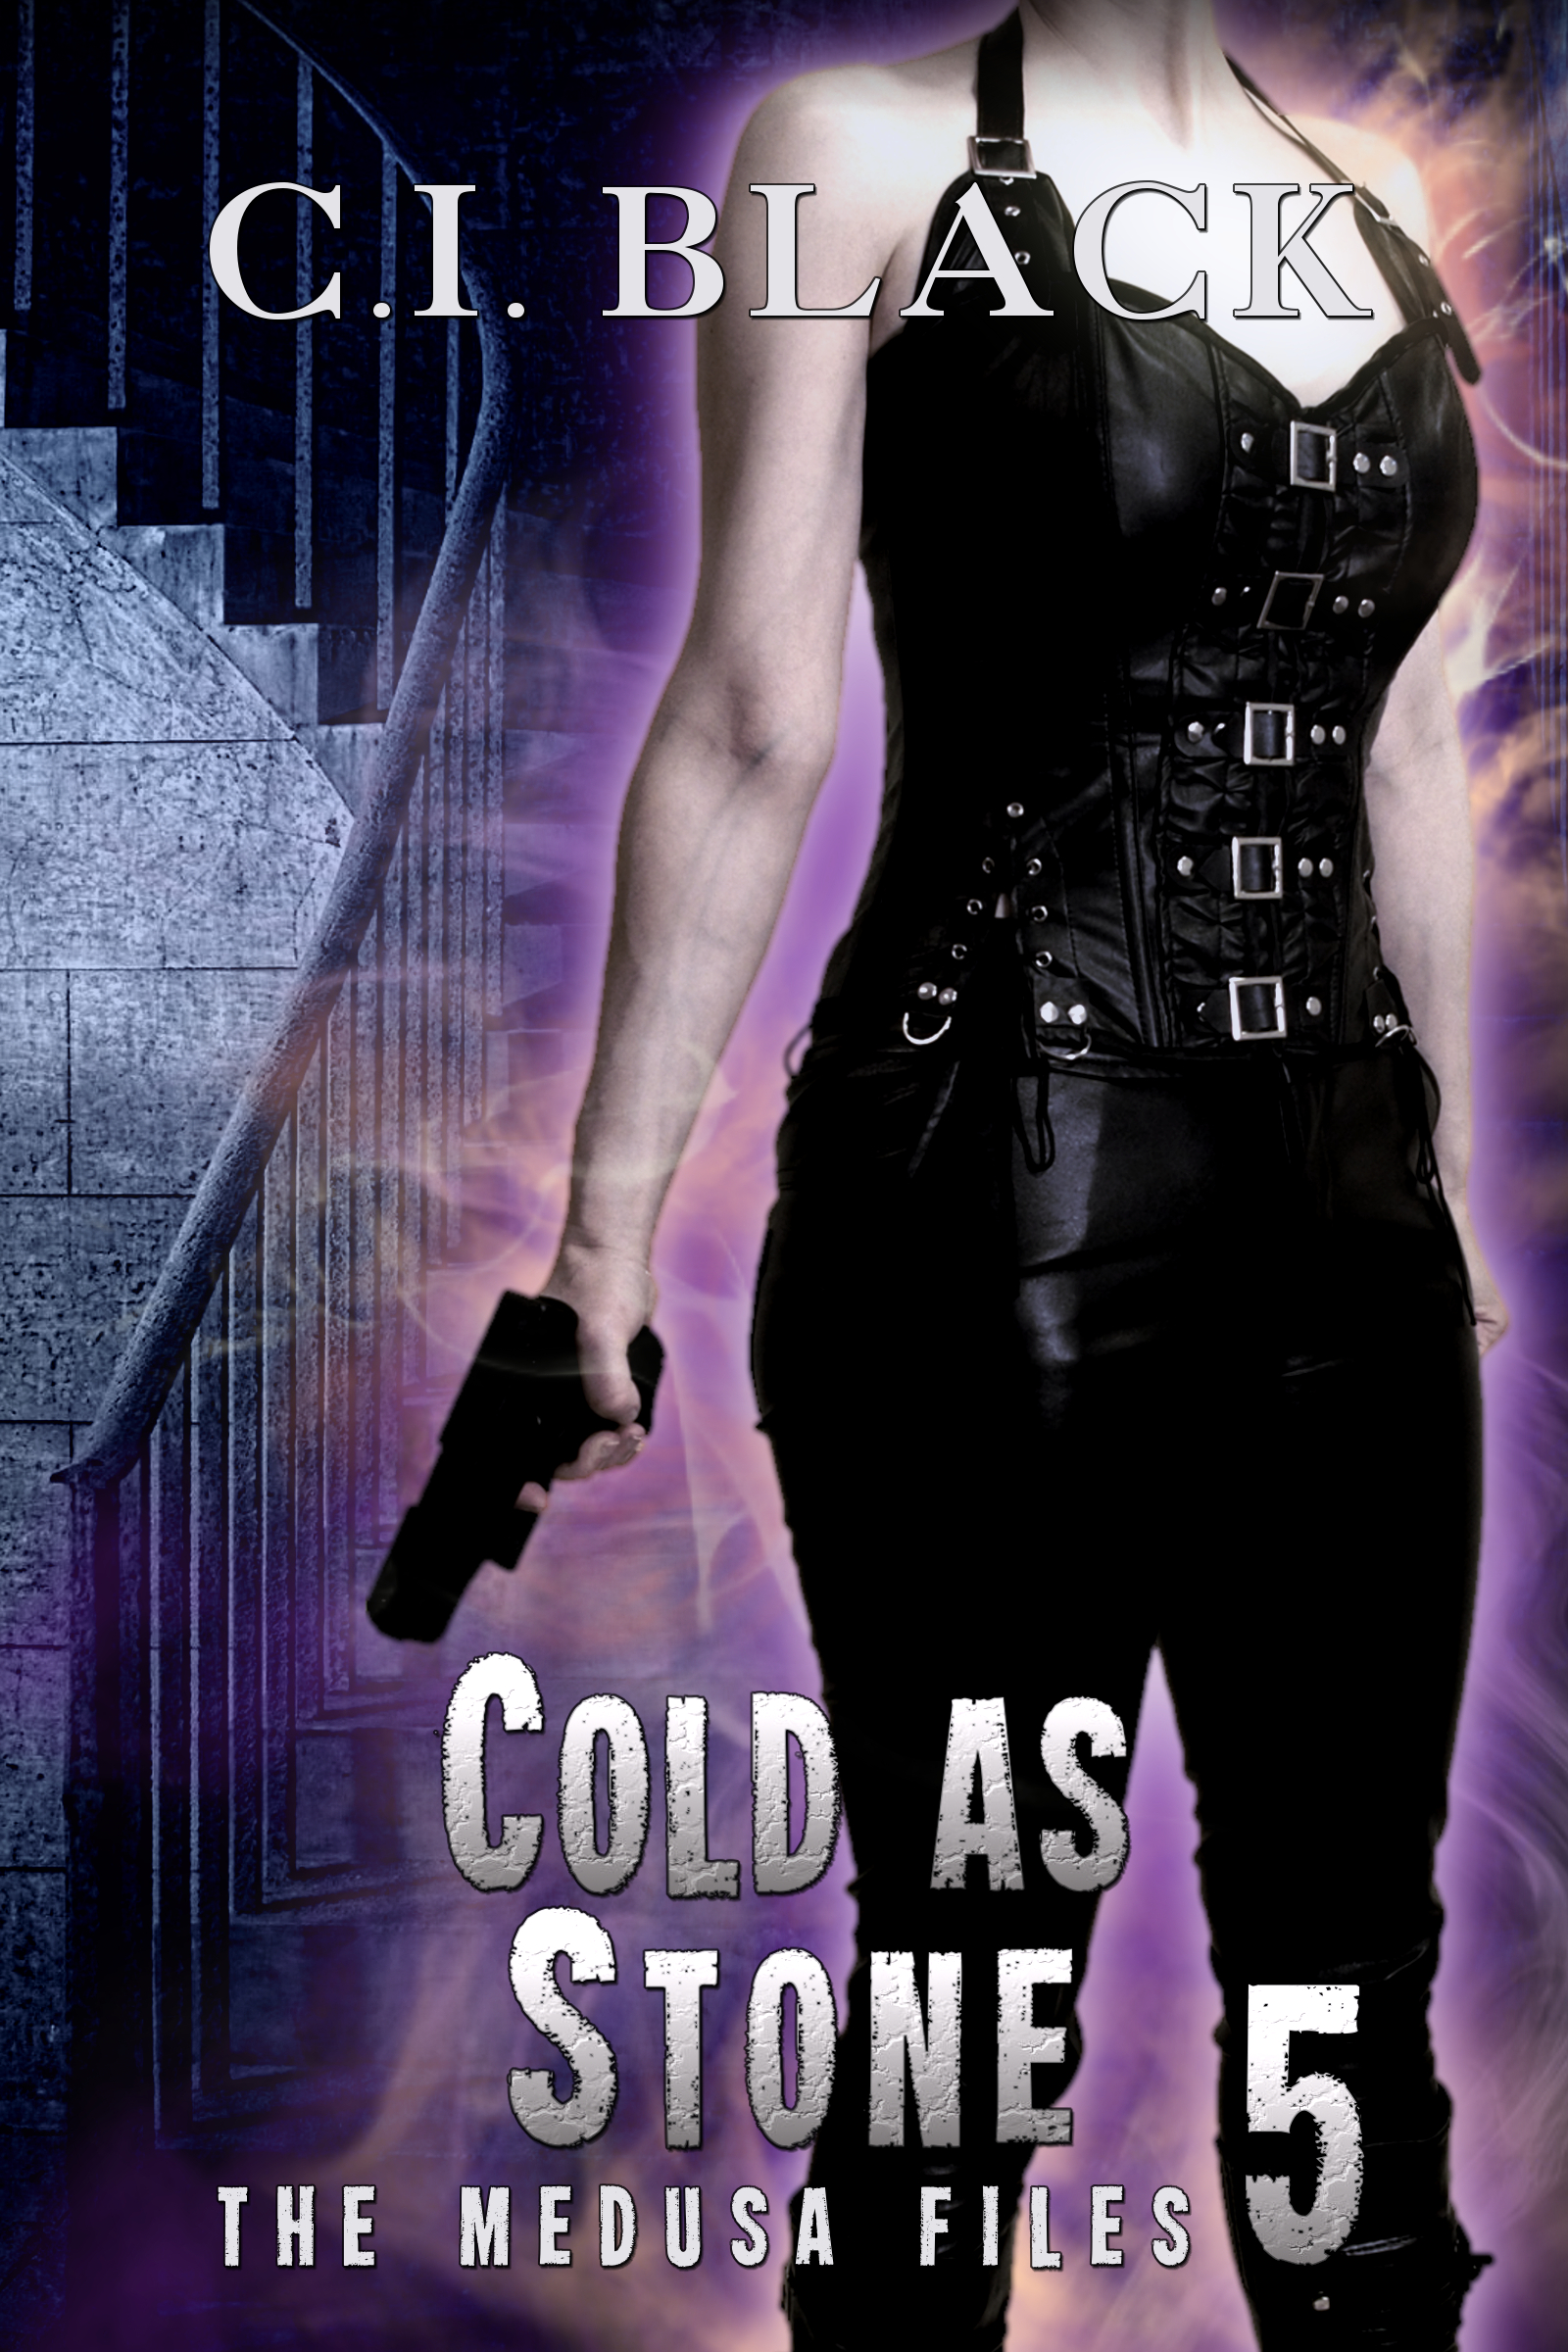 The Medusa Files, case 5: Cold As Stone, an urban fantasy / paranormal romance and the fifth book in the Medusa Files series by C.I. Black